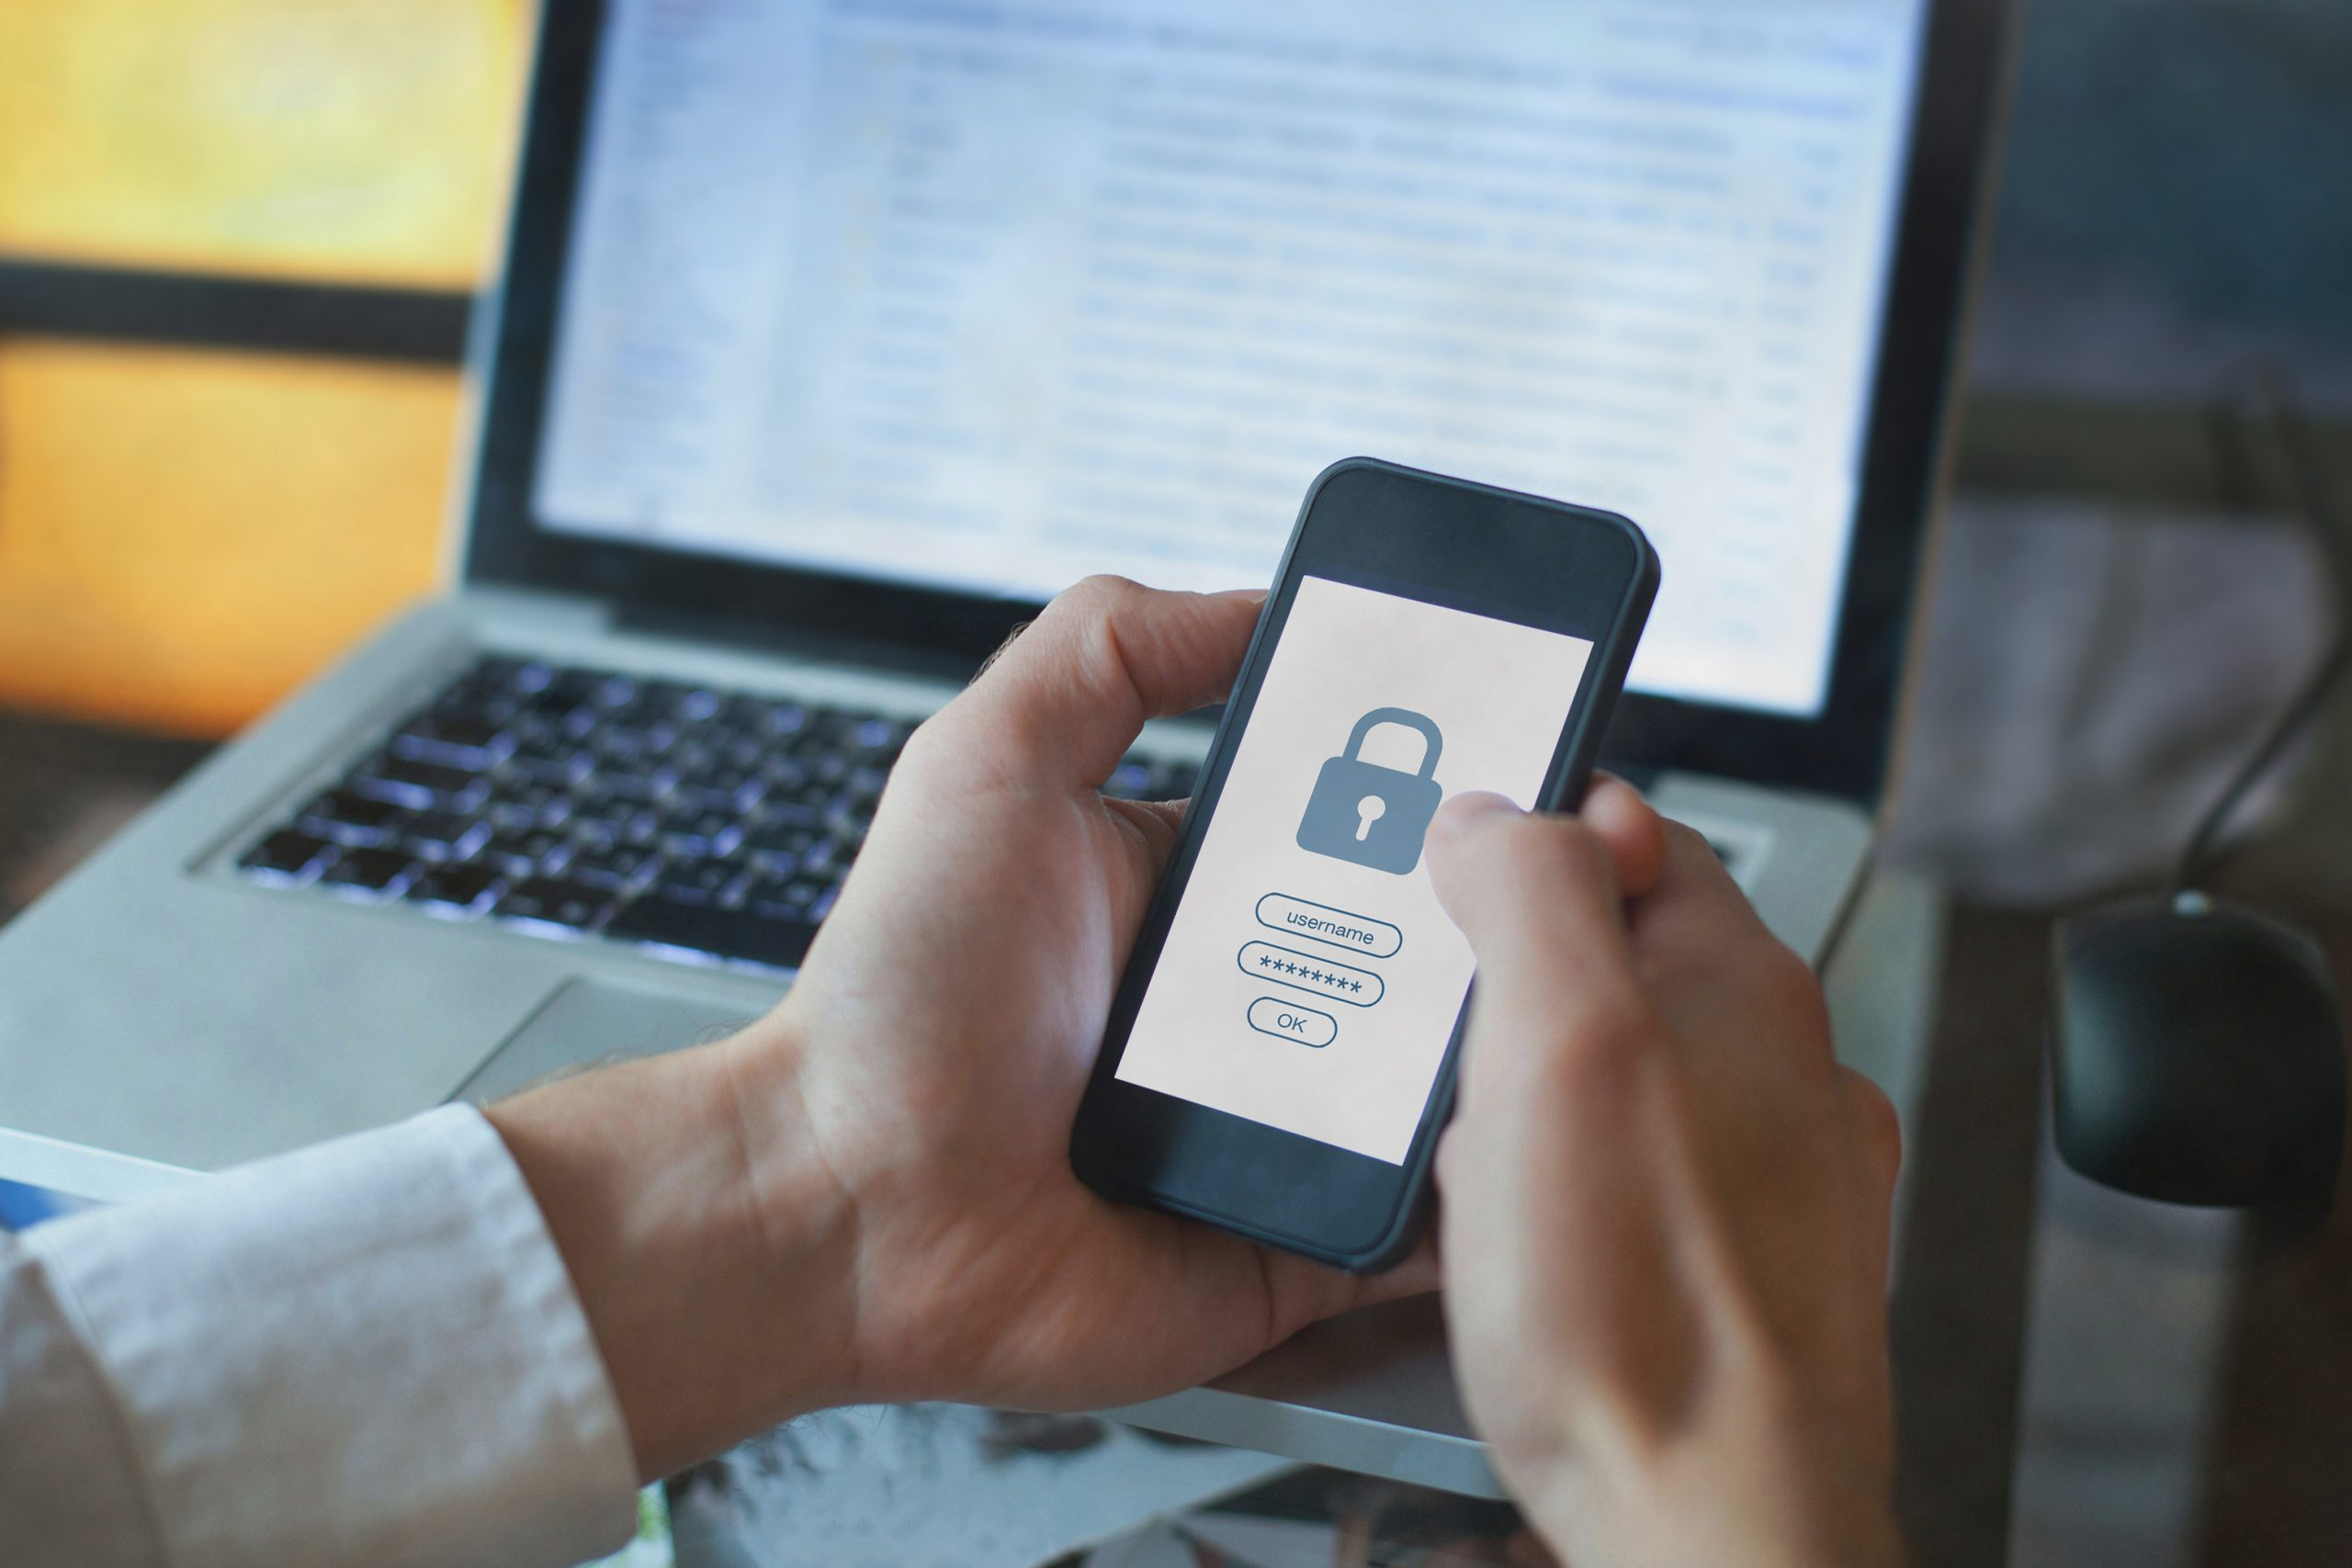 Hands holding phone with lock icon to show SMS security